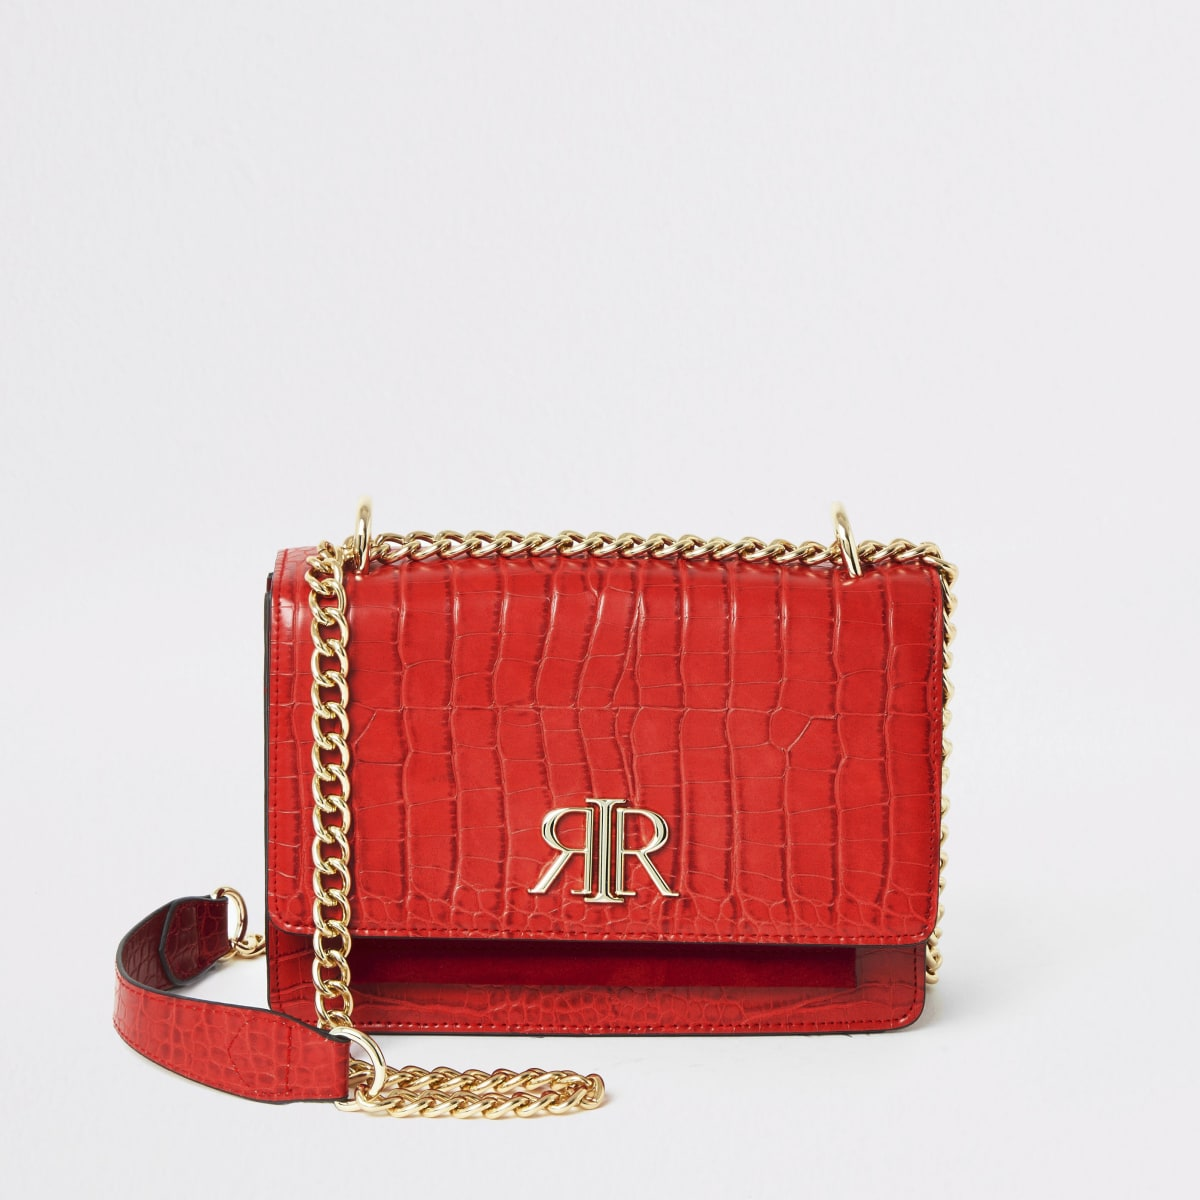 Red RI croc embossed underarm satchel bag